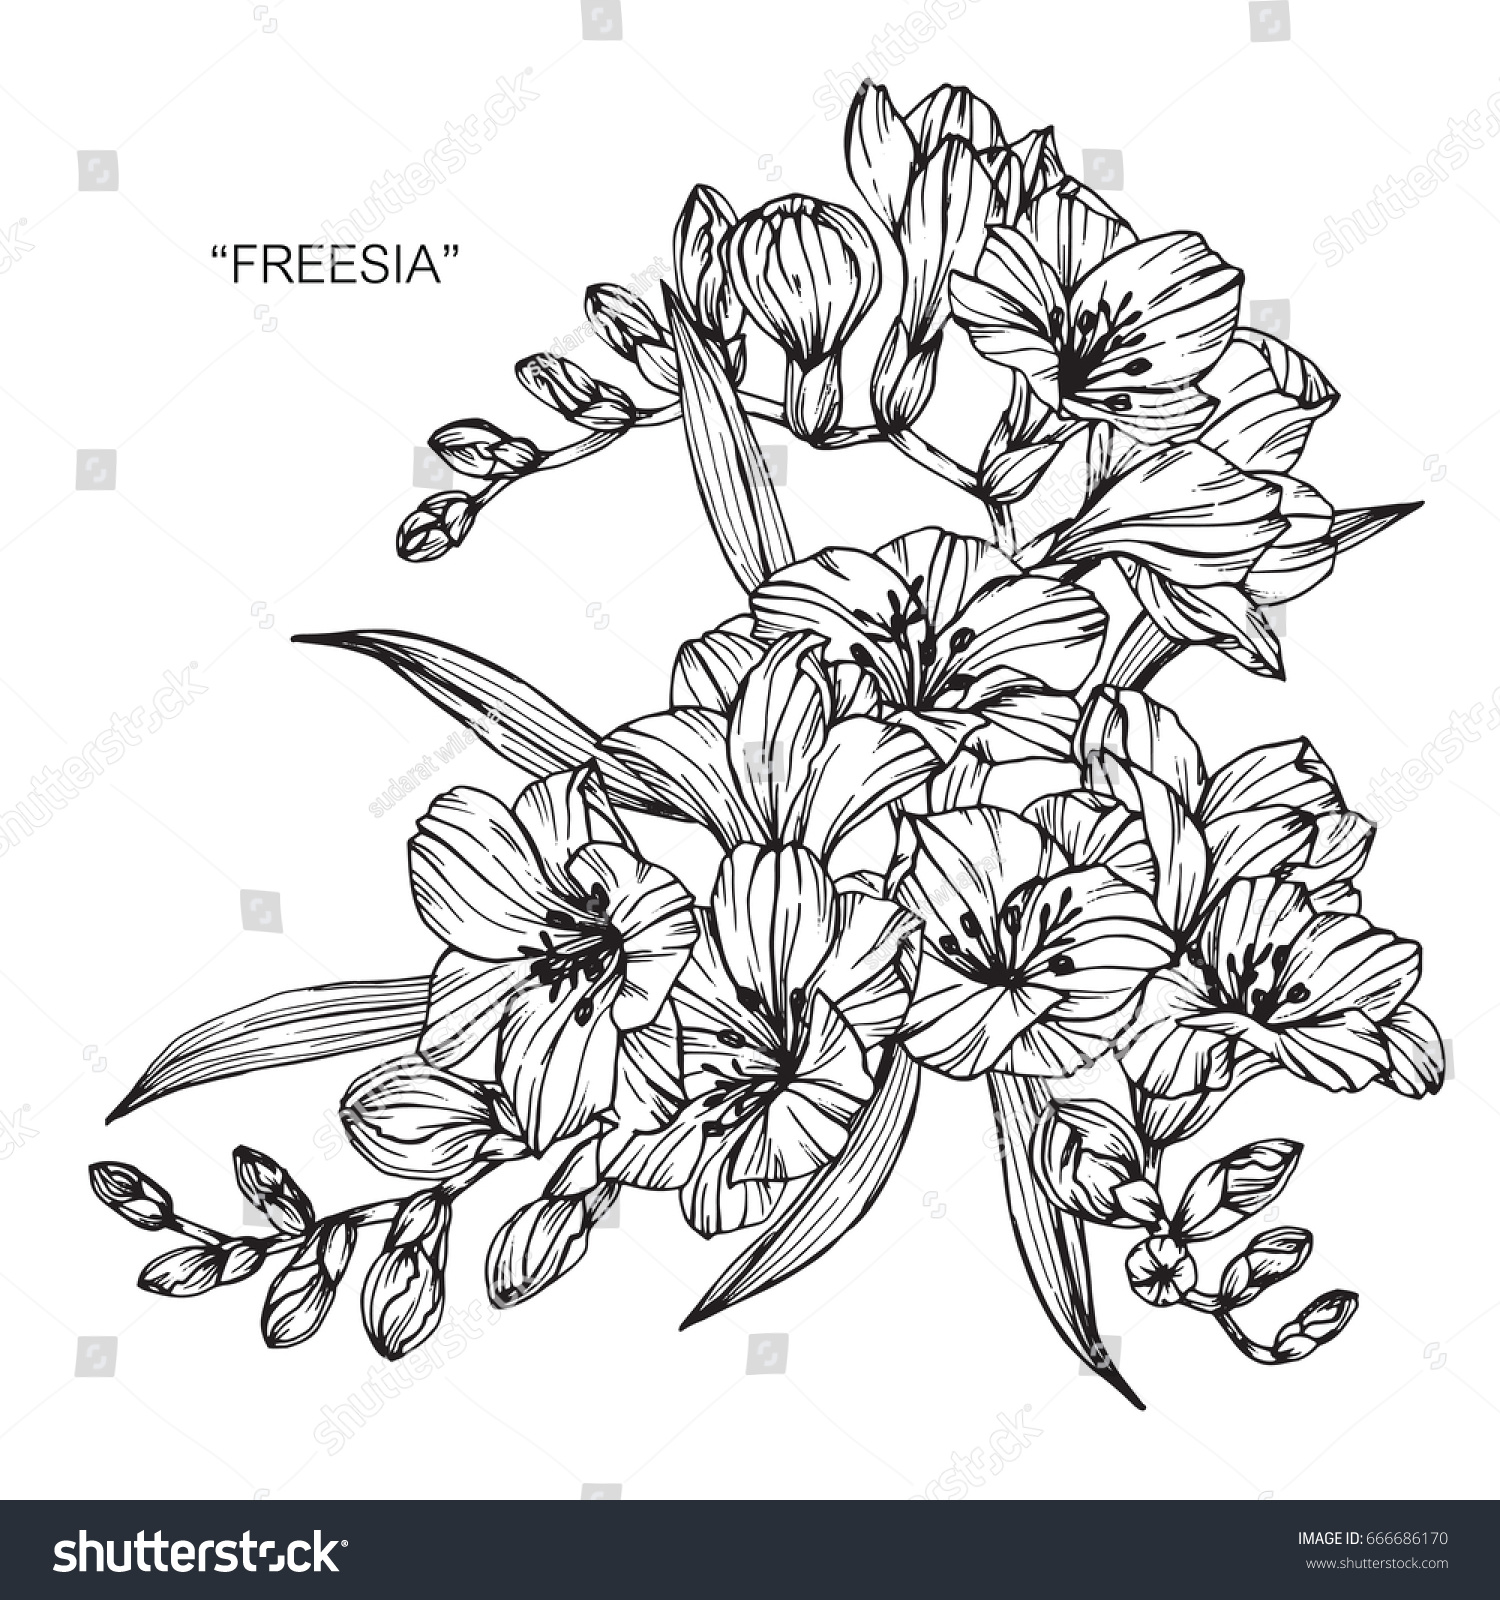 Bouquet freesia flowers drawing sketch lineart stock vector 2018 bouquet of freesia flowers drawing and sketch with line art on white backgrounds izmirmasajfo